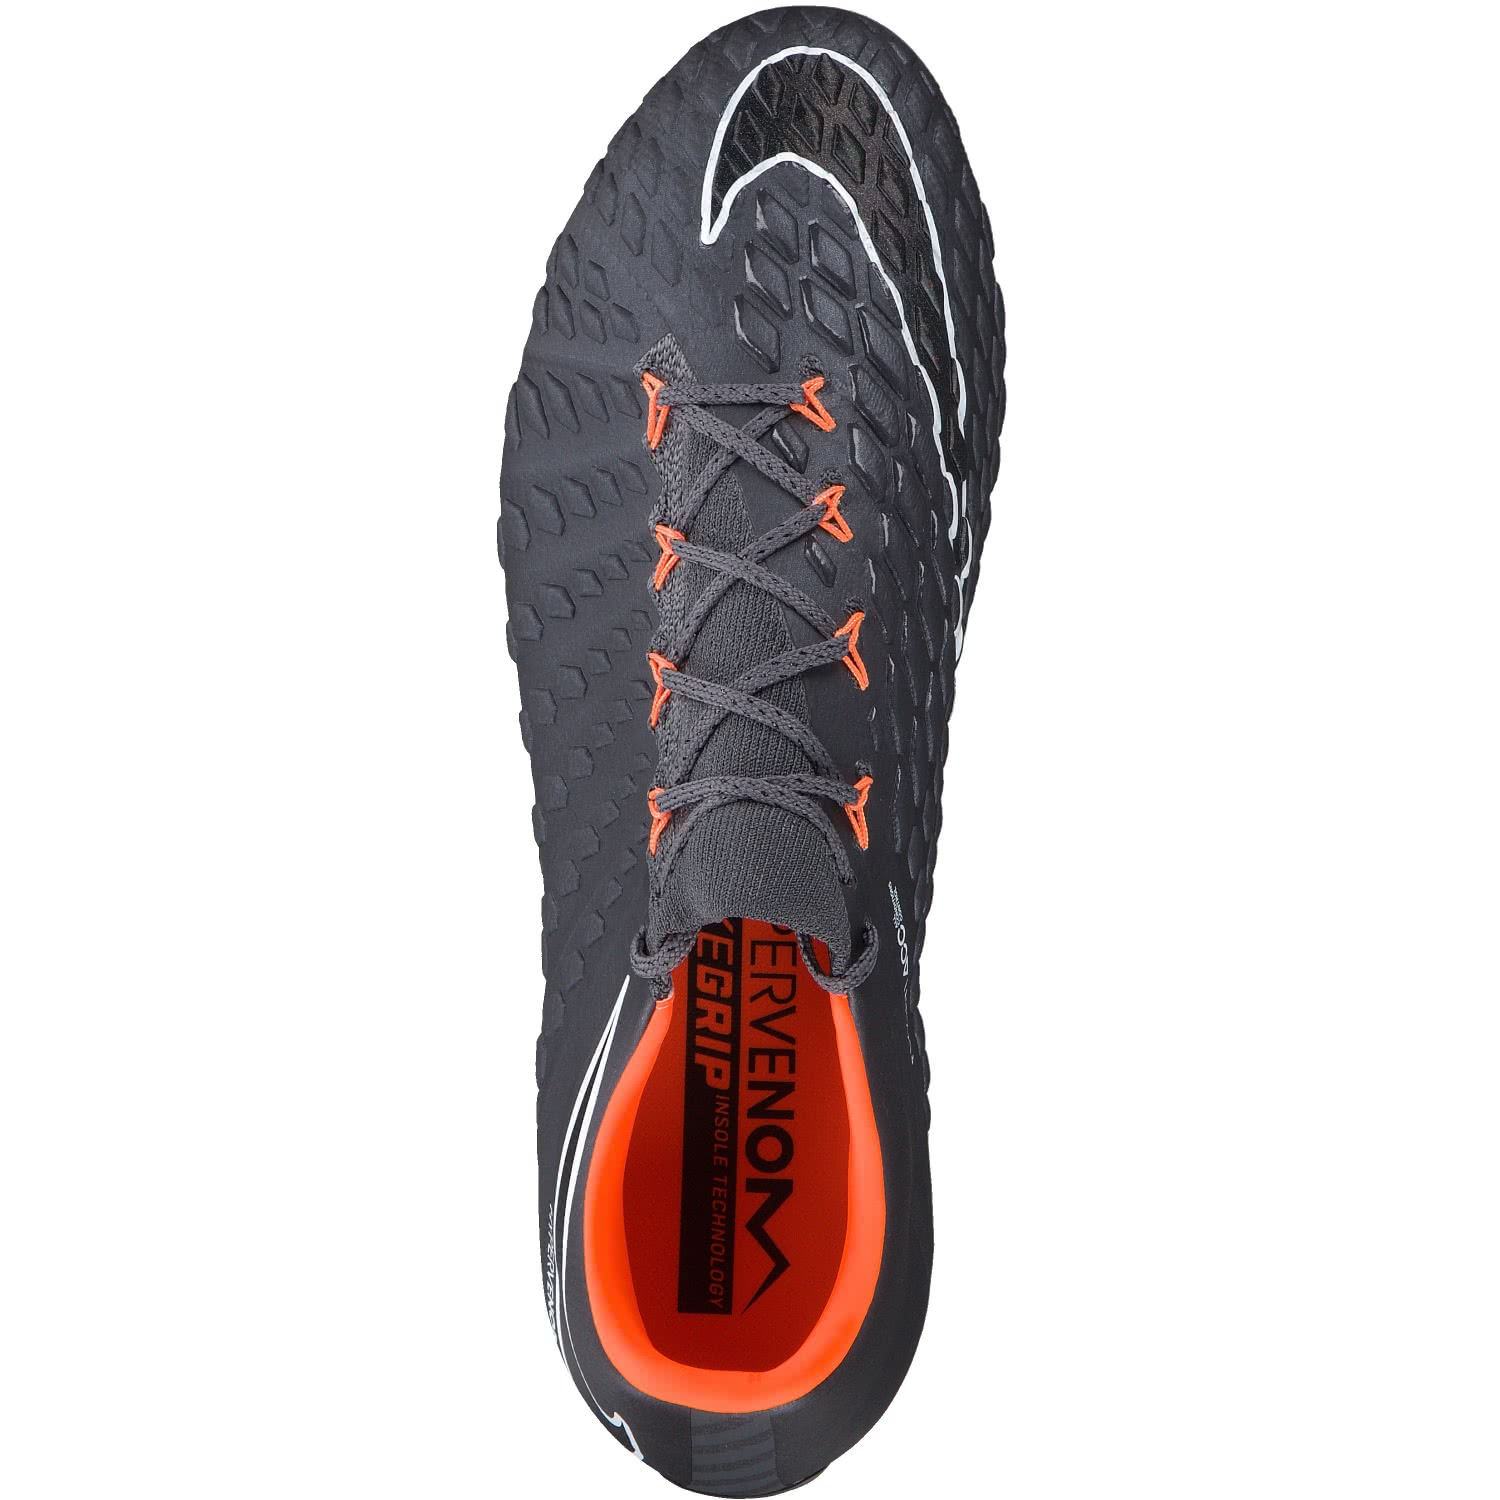 HYPERVENOM PHANTOM III ELITE AC SG-PRO - Fußballschuh Stollen - dark grey/total orange/white StQtincqve